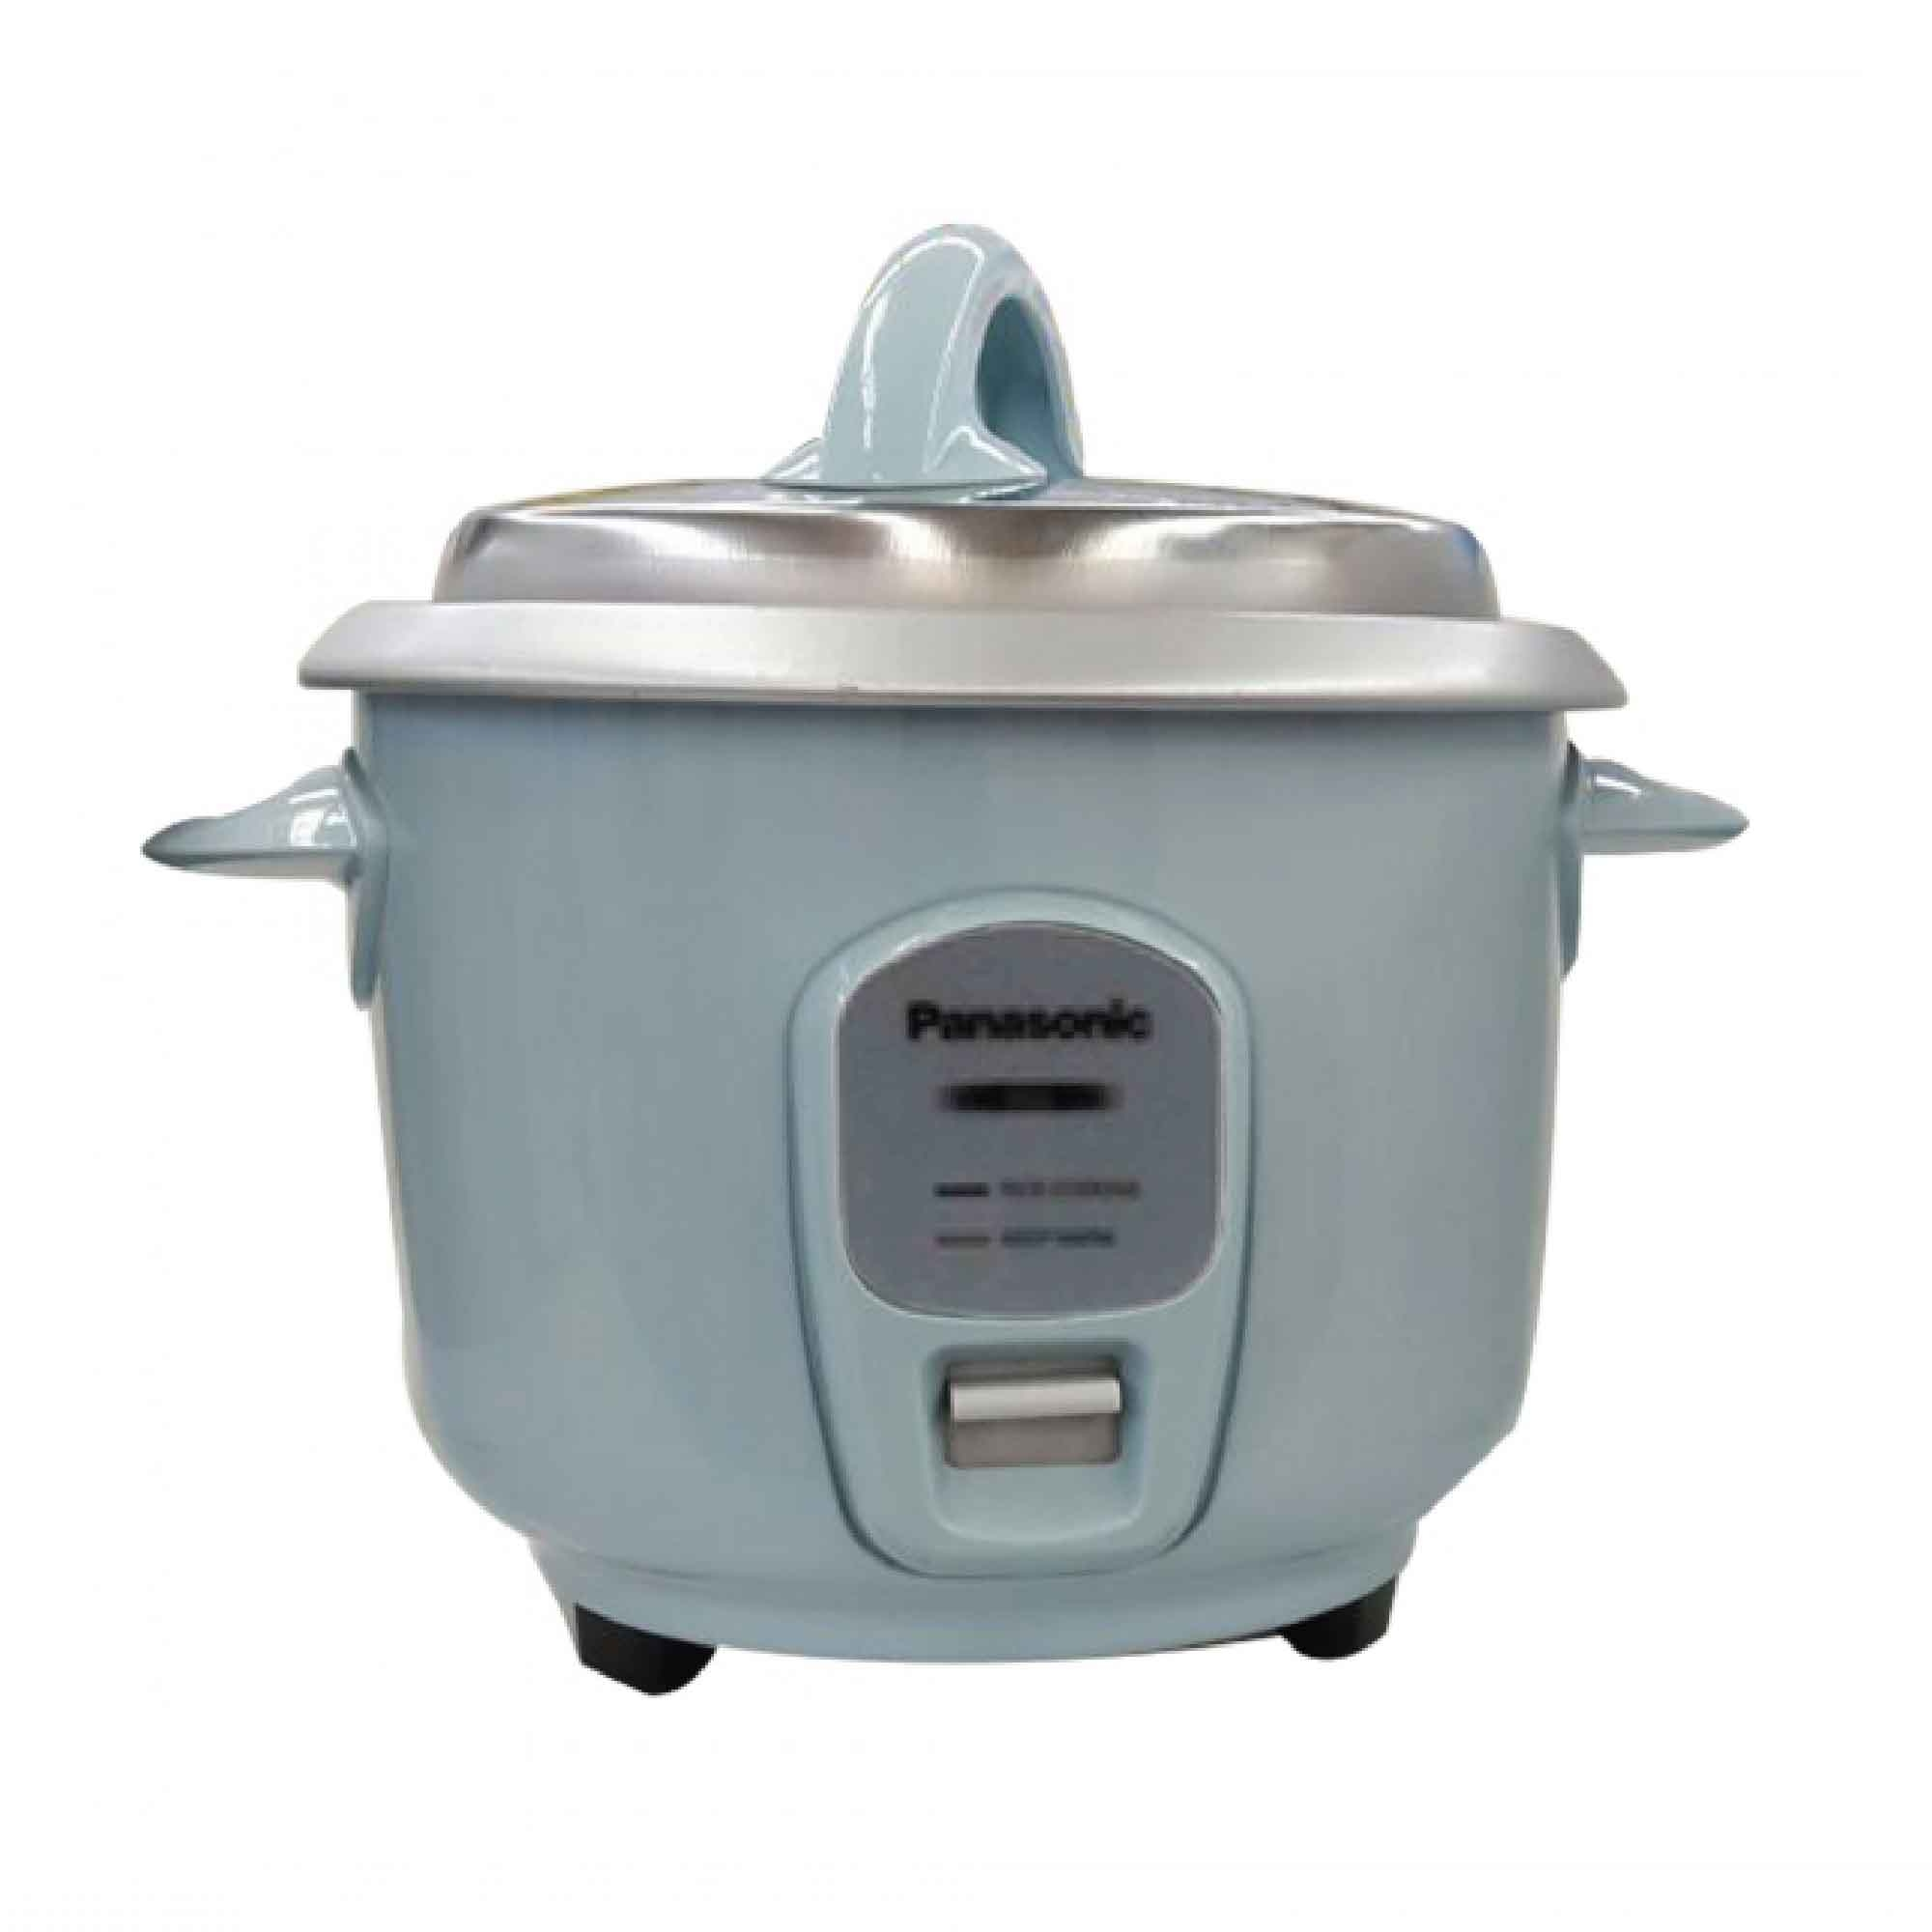 Panasonic Electric Rice Cooker User Guide Wiring Diagram And Sr E18a 1 8l Aluminium Inner Pot